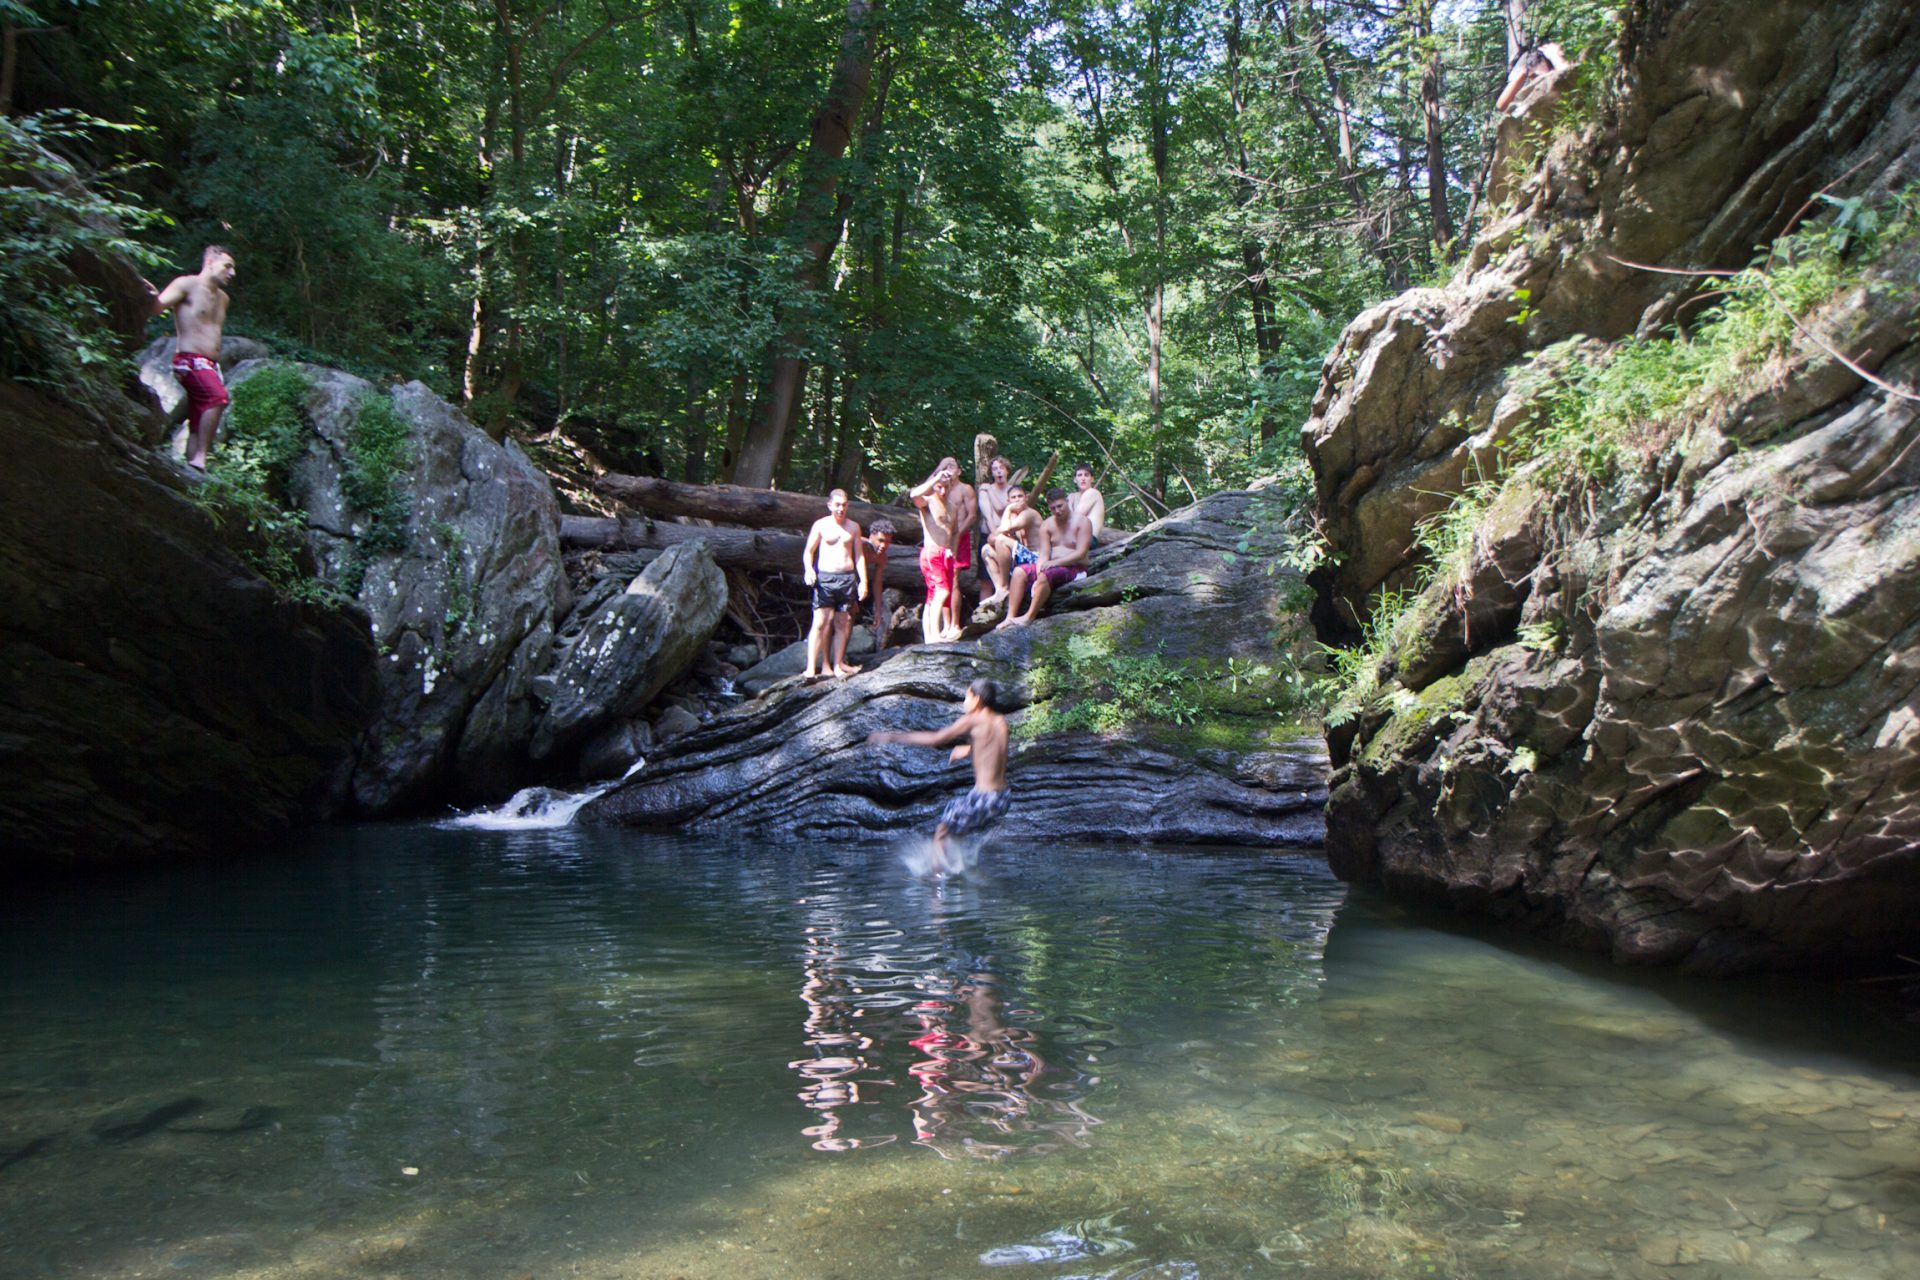 Swimming in the Wissahickon isn't so idyllic: There's poop in it